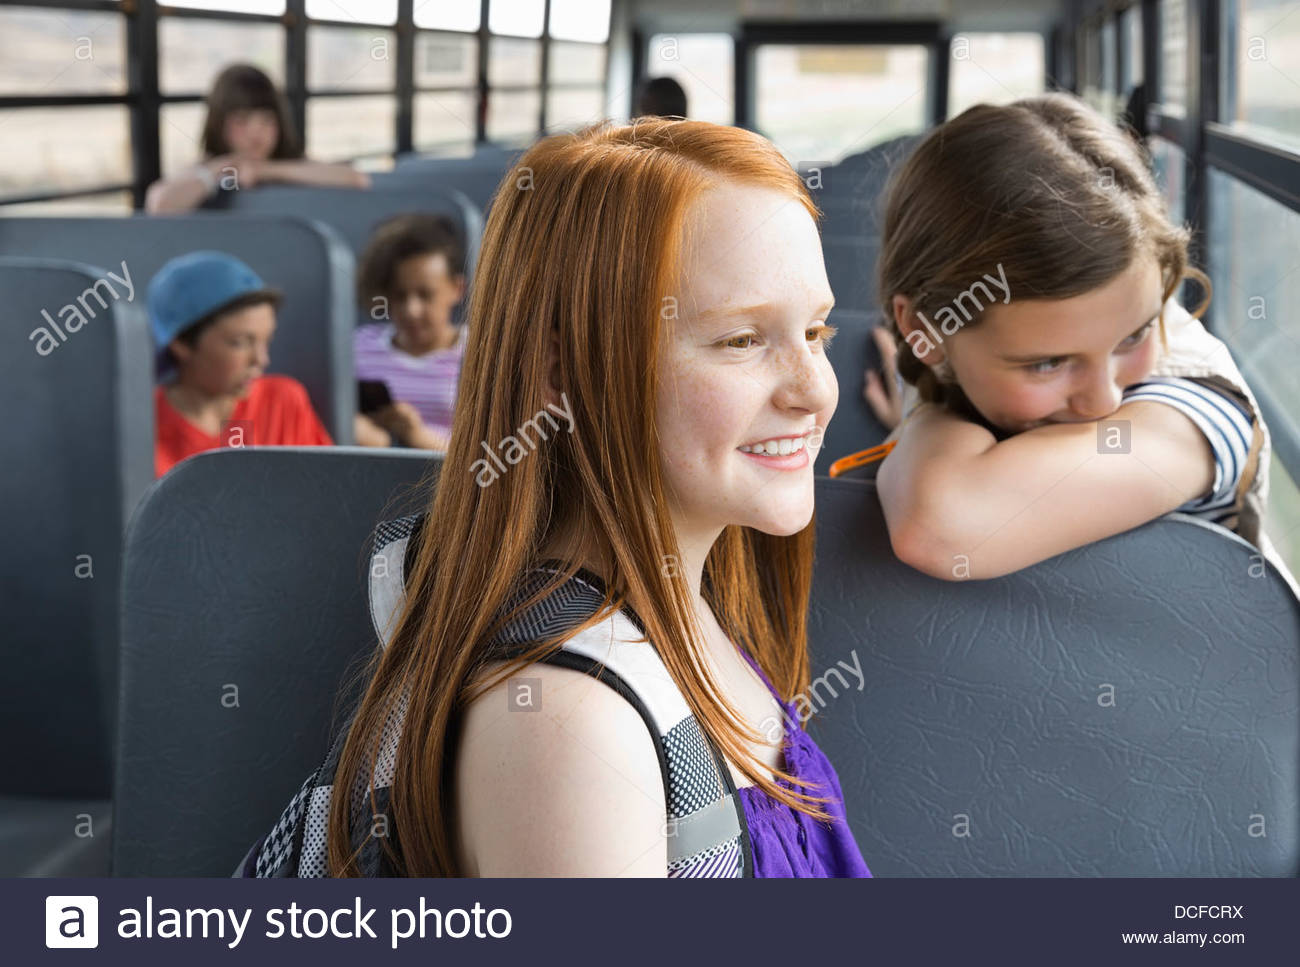 Schoolgirls looking out bus window - Stock Image